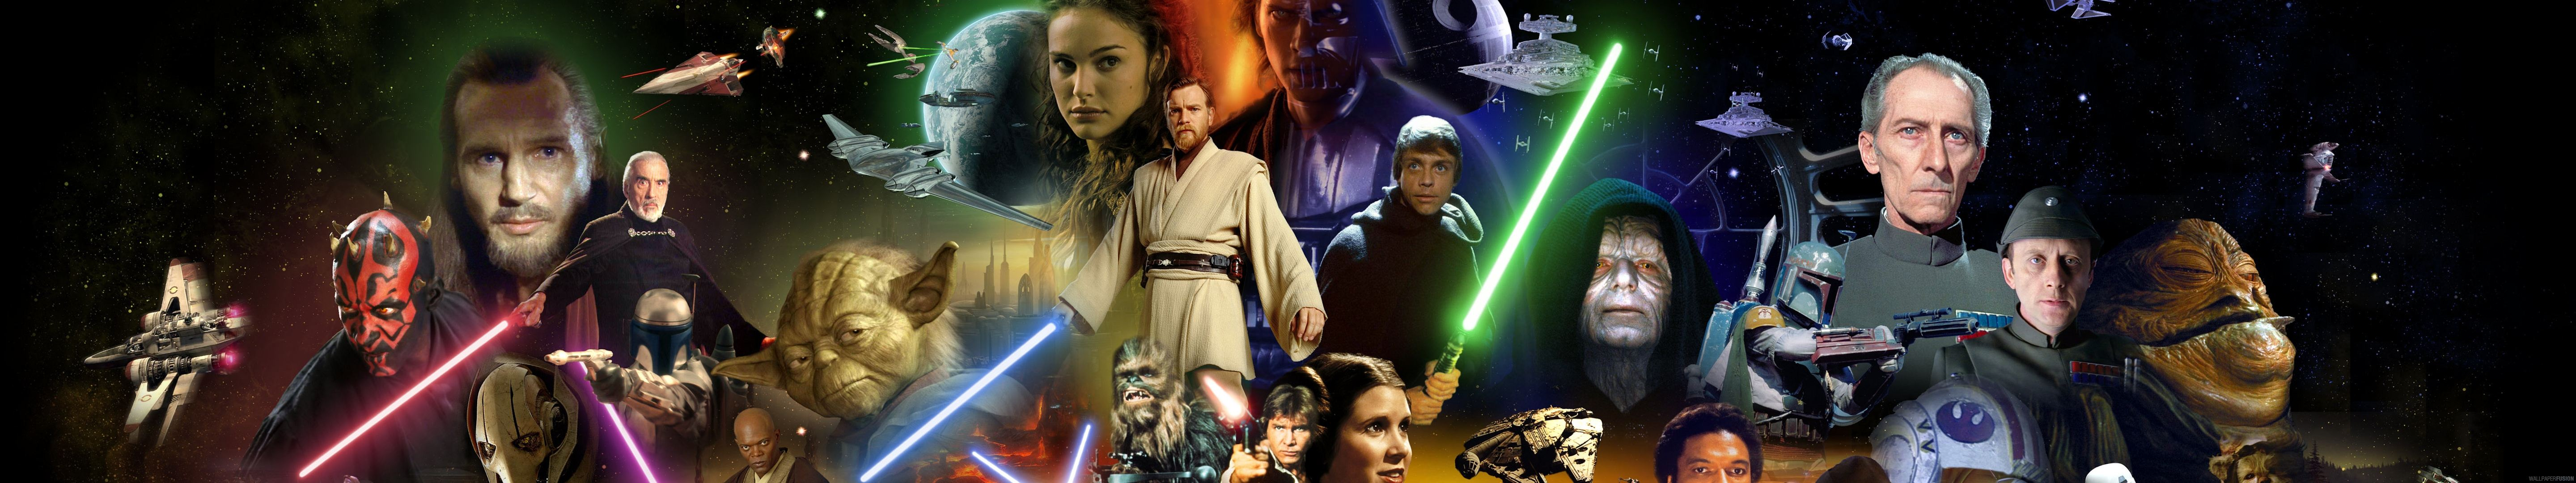 Free Download Star Wars Wallpaper 5760x1080 Imgurcom